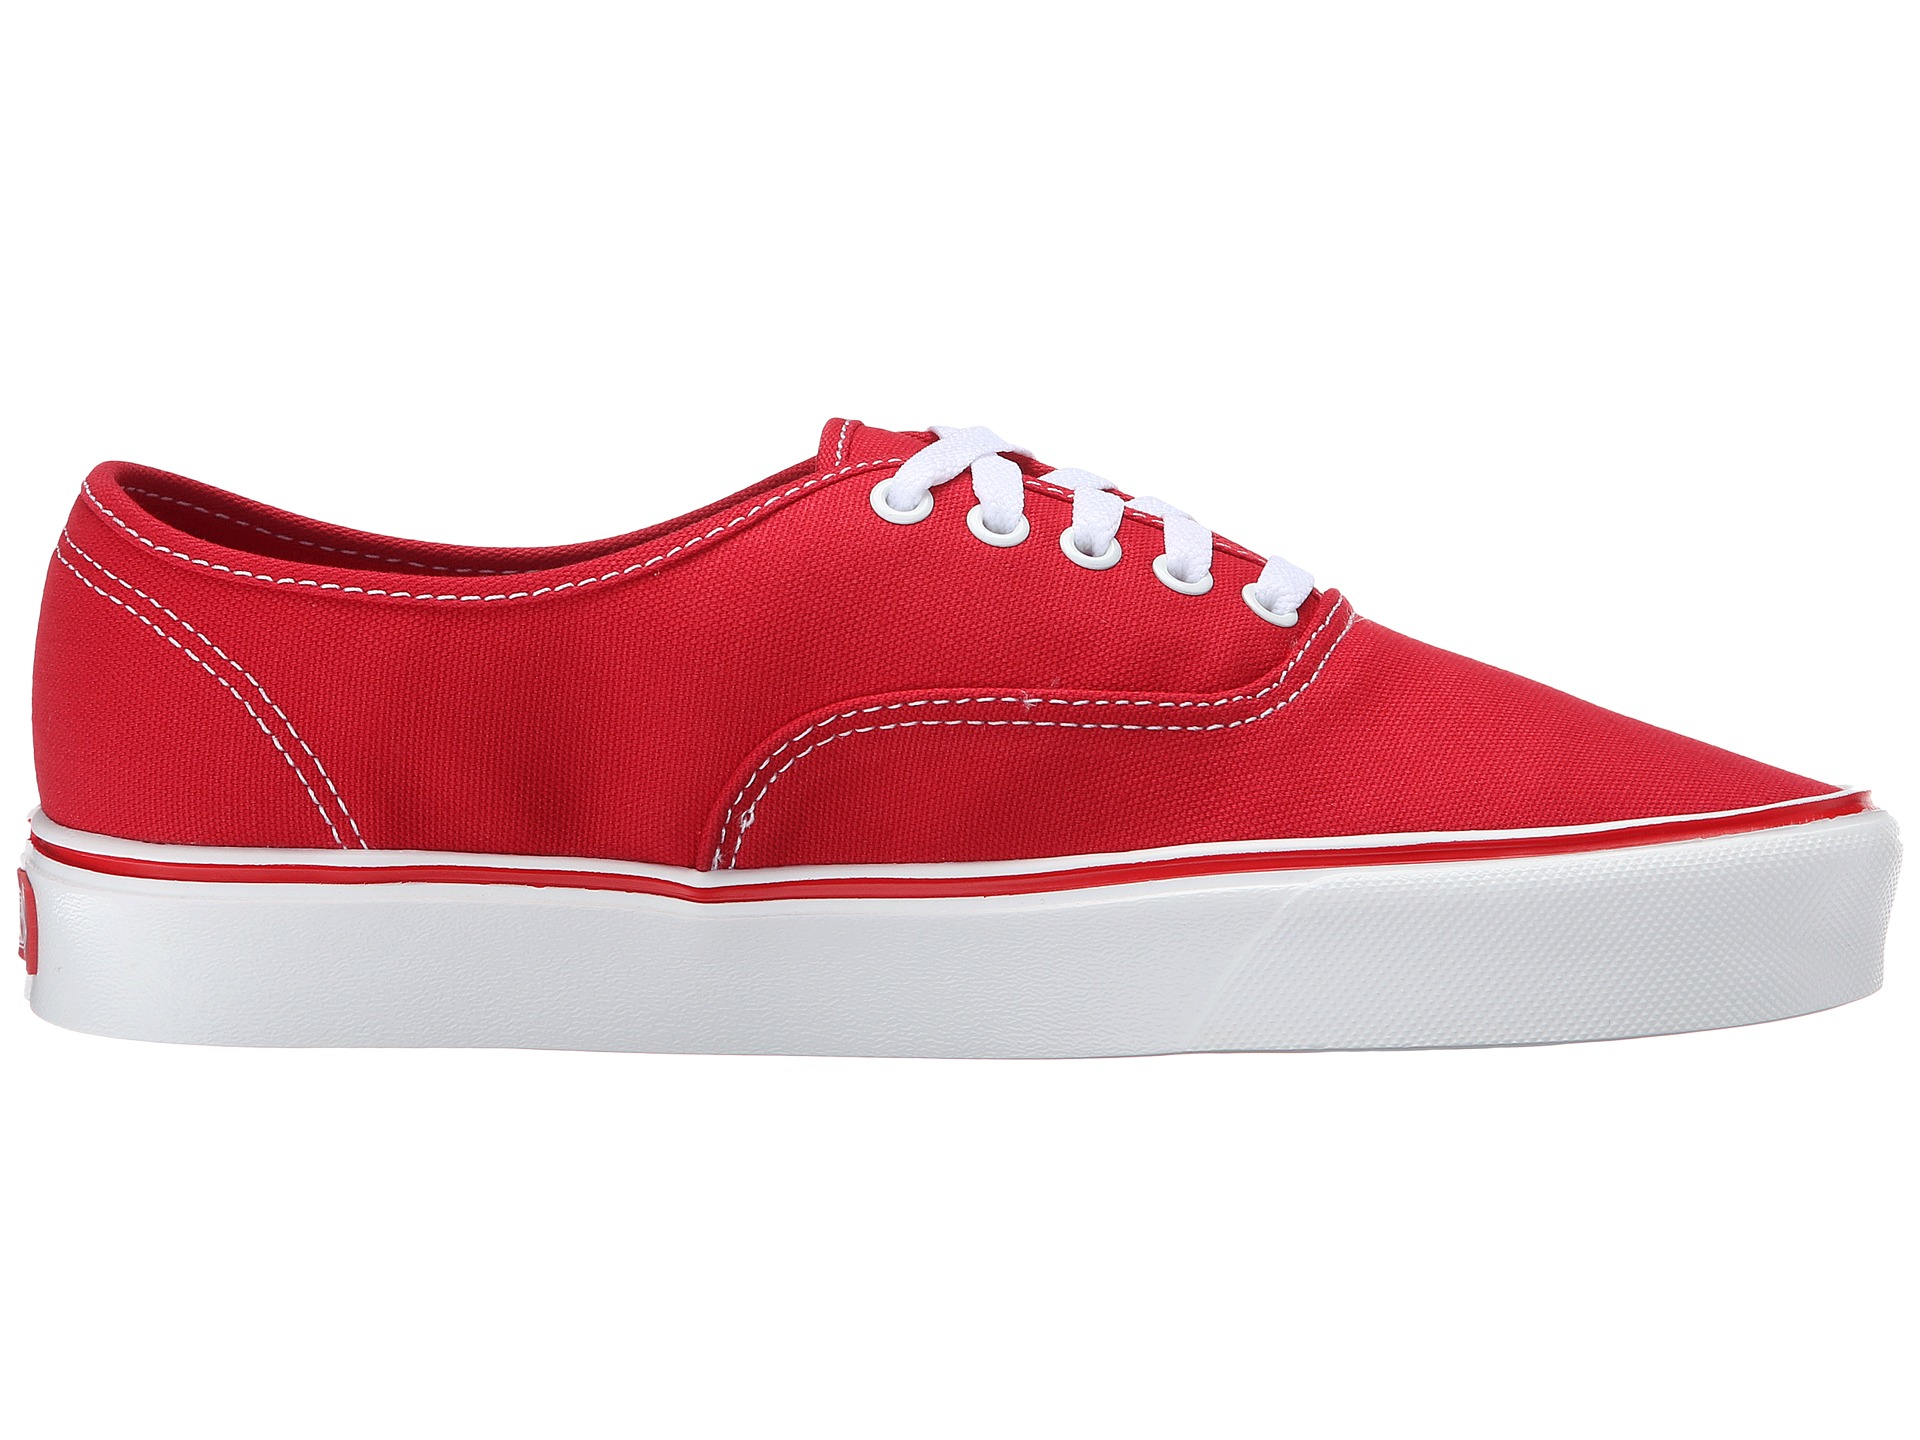 00a6724023 Lyst - Vans Authentic Lite + in Red for Men